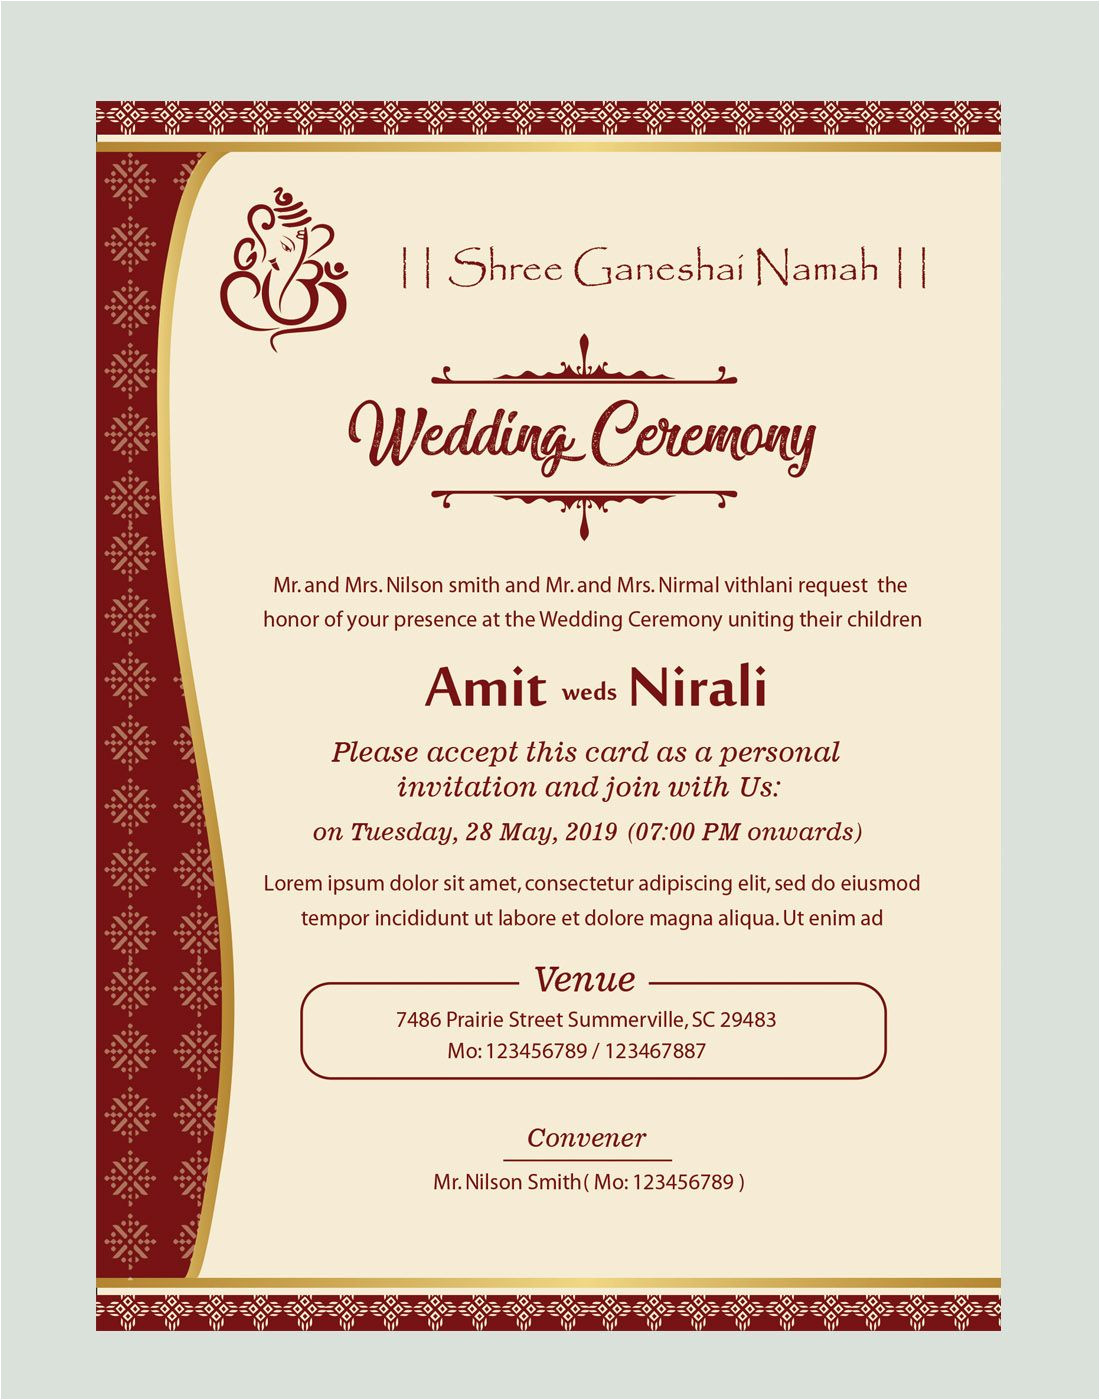 Marriage Card Quotes In English Free Kankotri Card Template with Images Printable